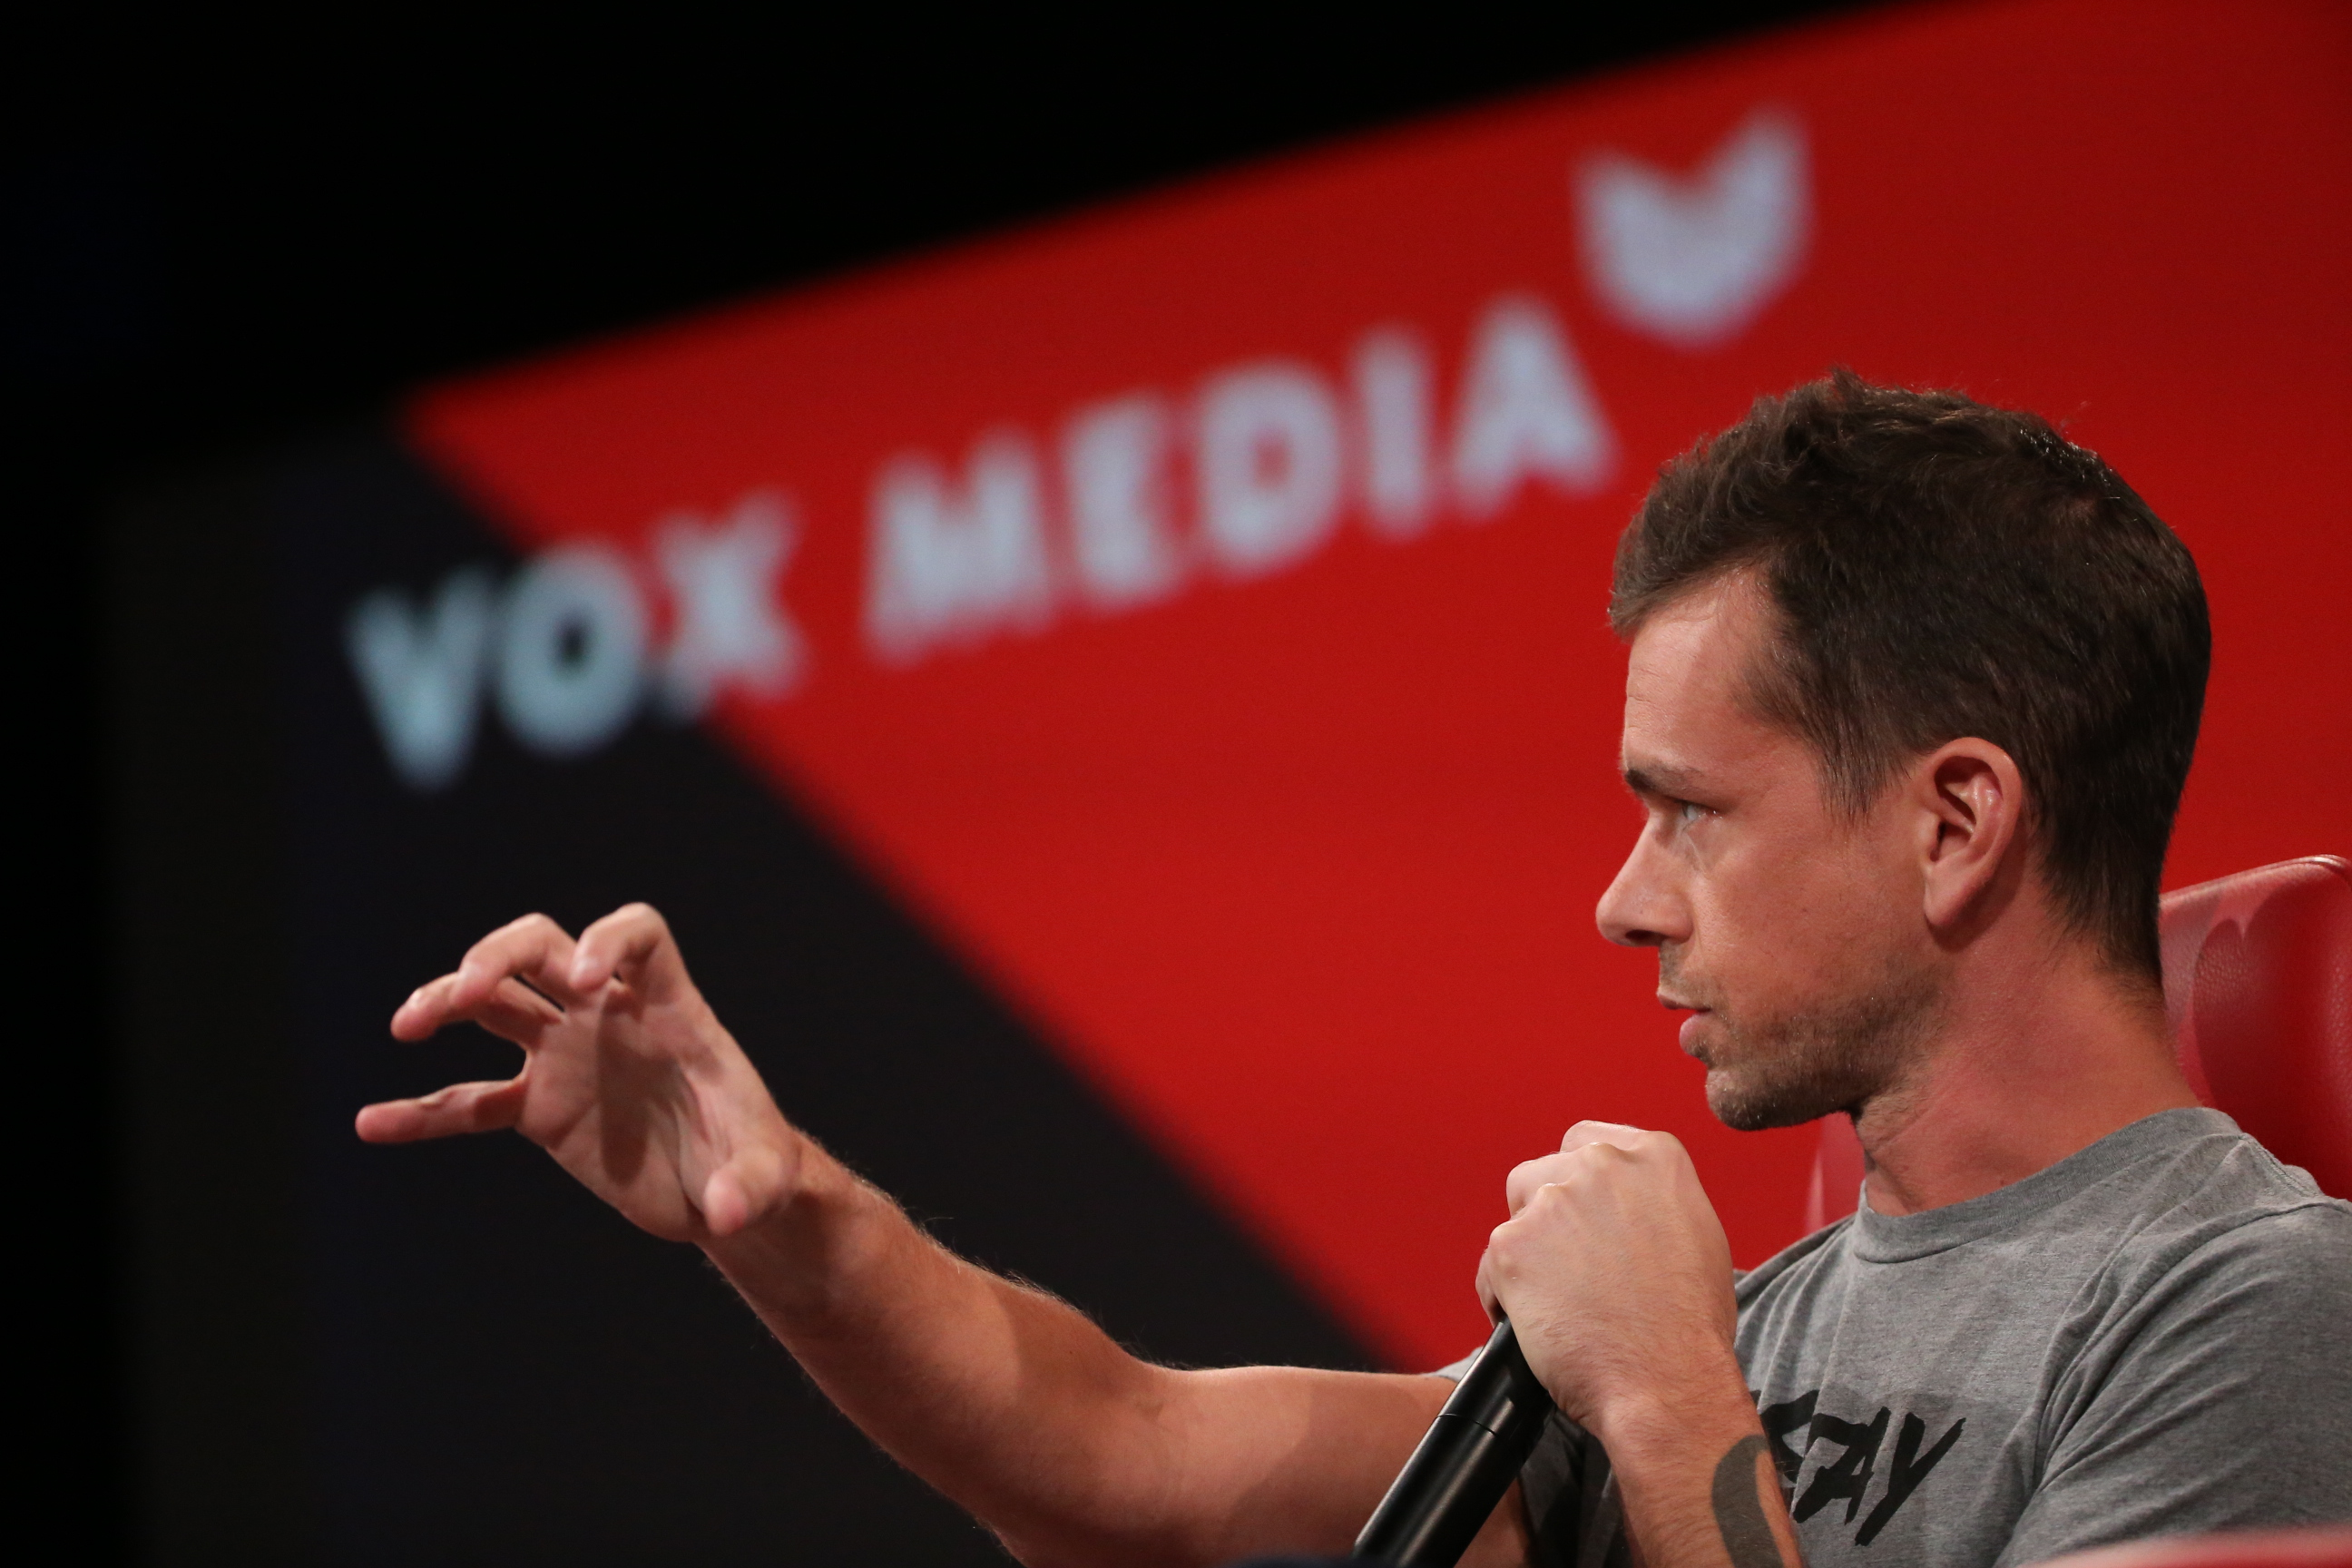 Twitter CEO Jack Dorsey onstage at Code in front of a backdrop that reads Vox Media.